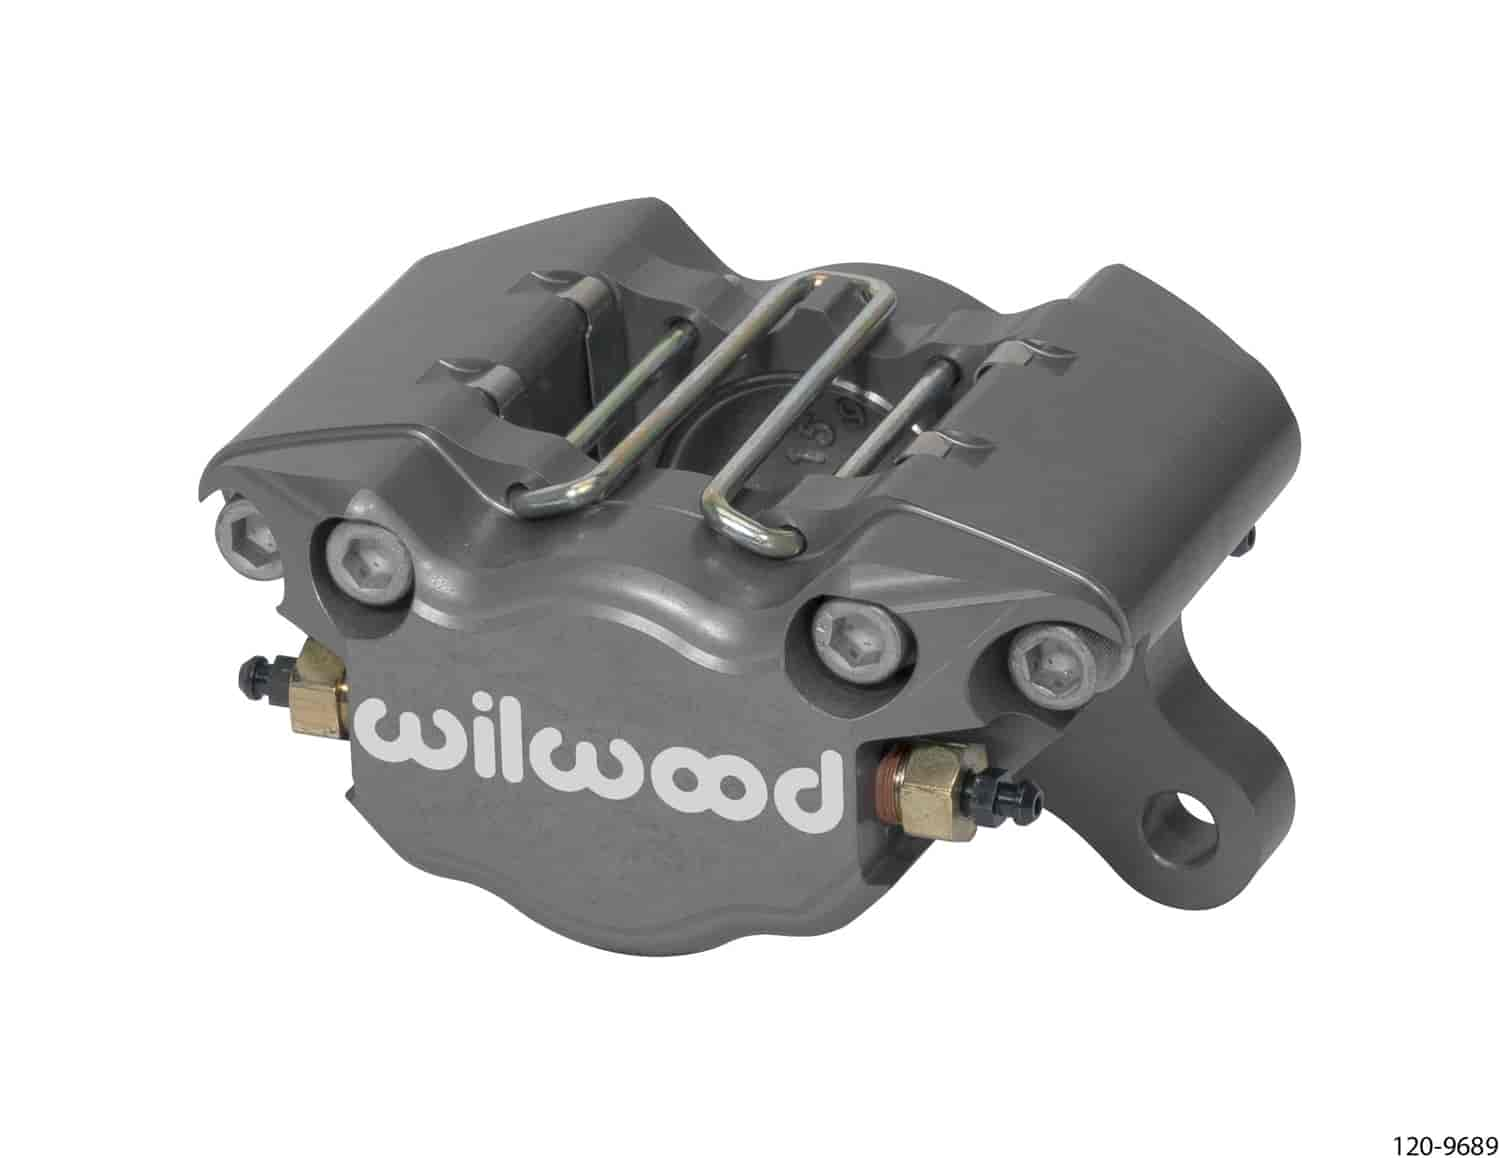 Wilwood 120-9689 - Wilwood Dynapro Single Billet Calipers